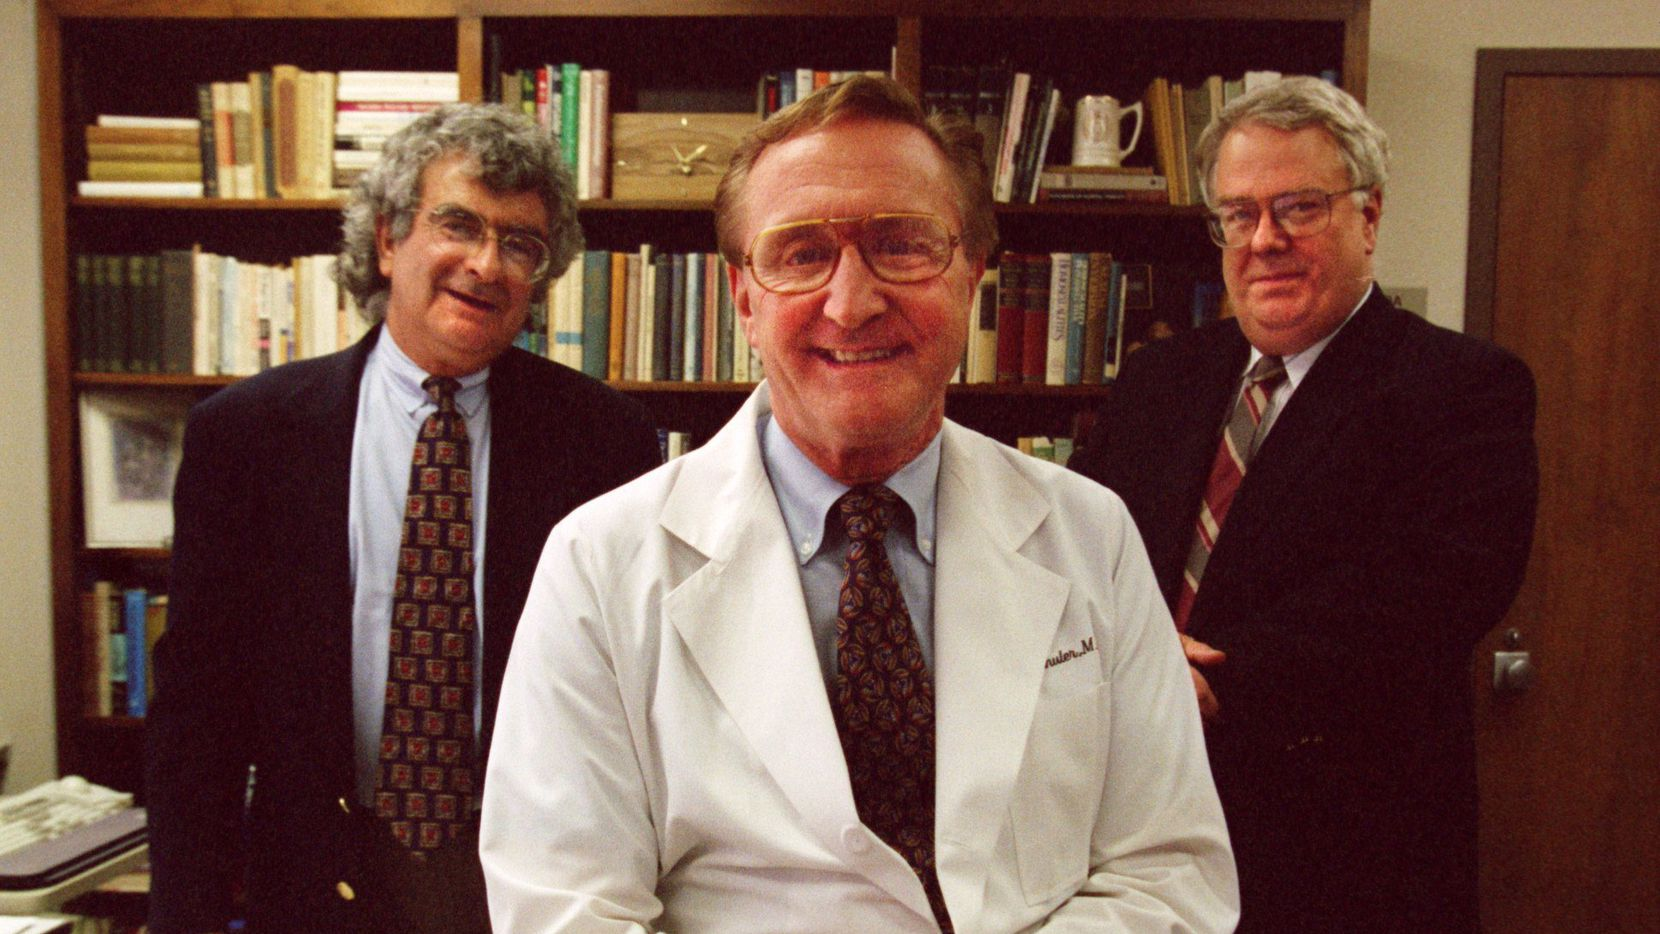 Dr. Kenneth Altshuler (center), is pictured with two colleagues, Dr. Joel S. Feiner (left) and Dr. John Rush in this 1996 photo.